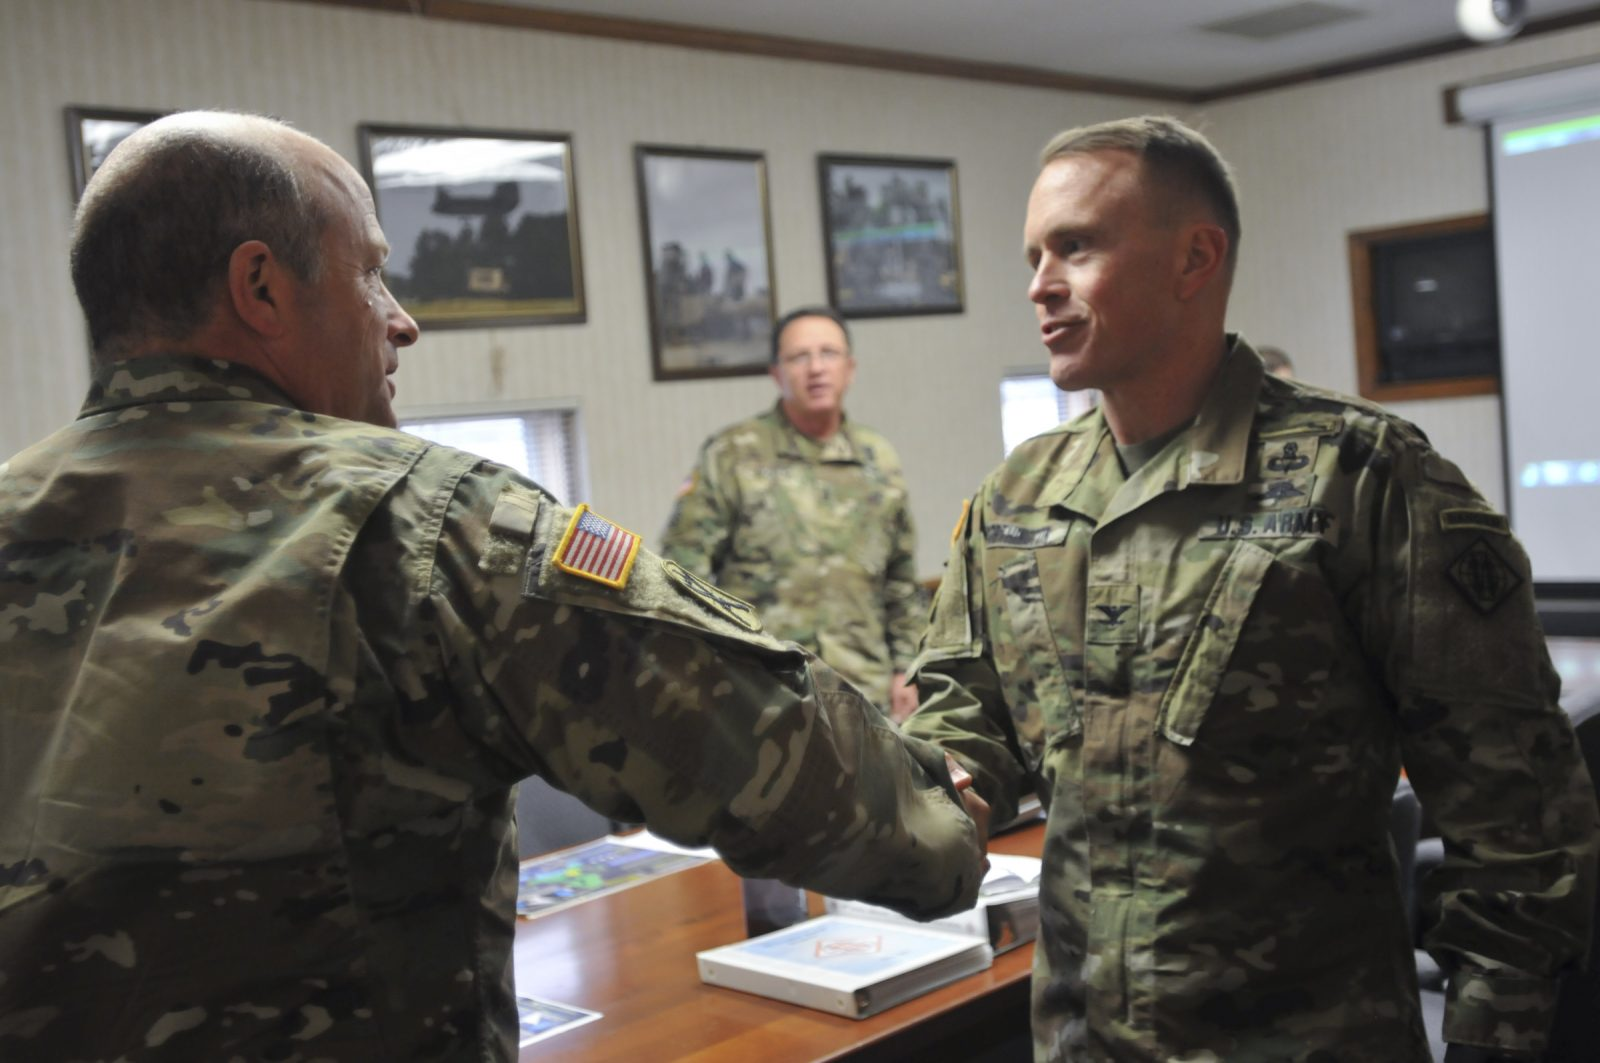 soliders shaking hands in office